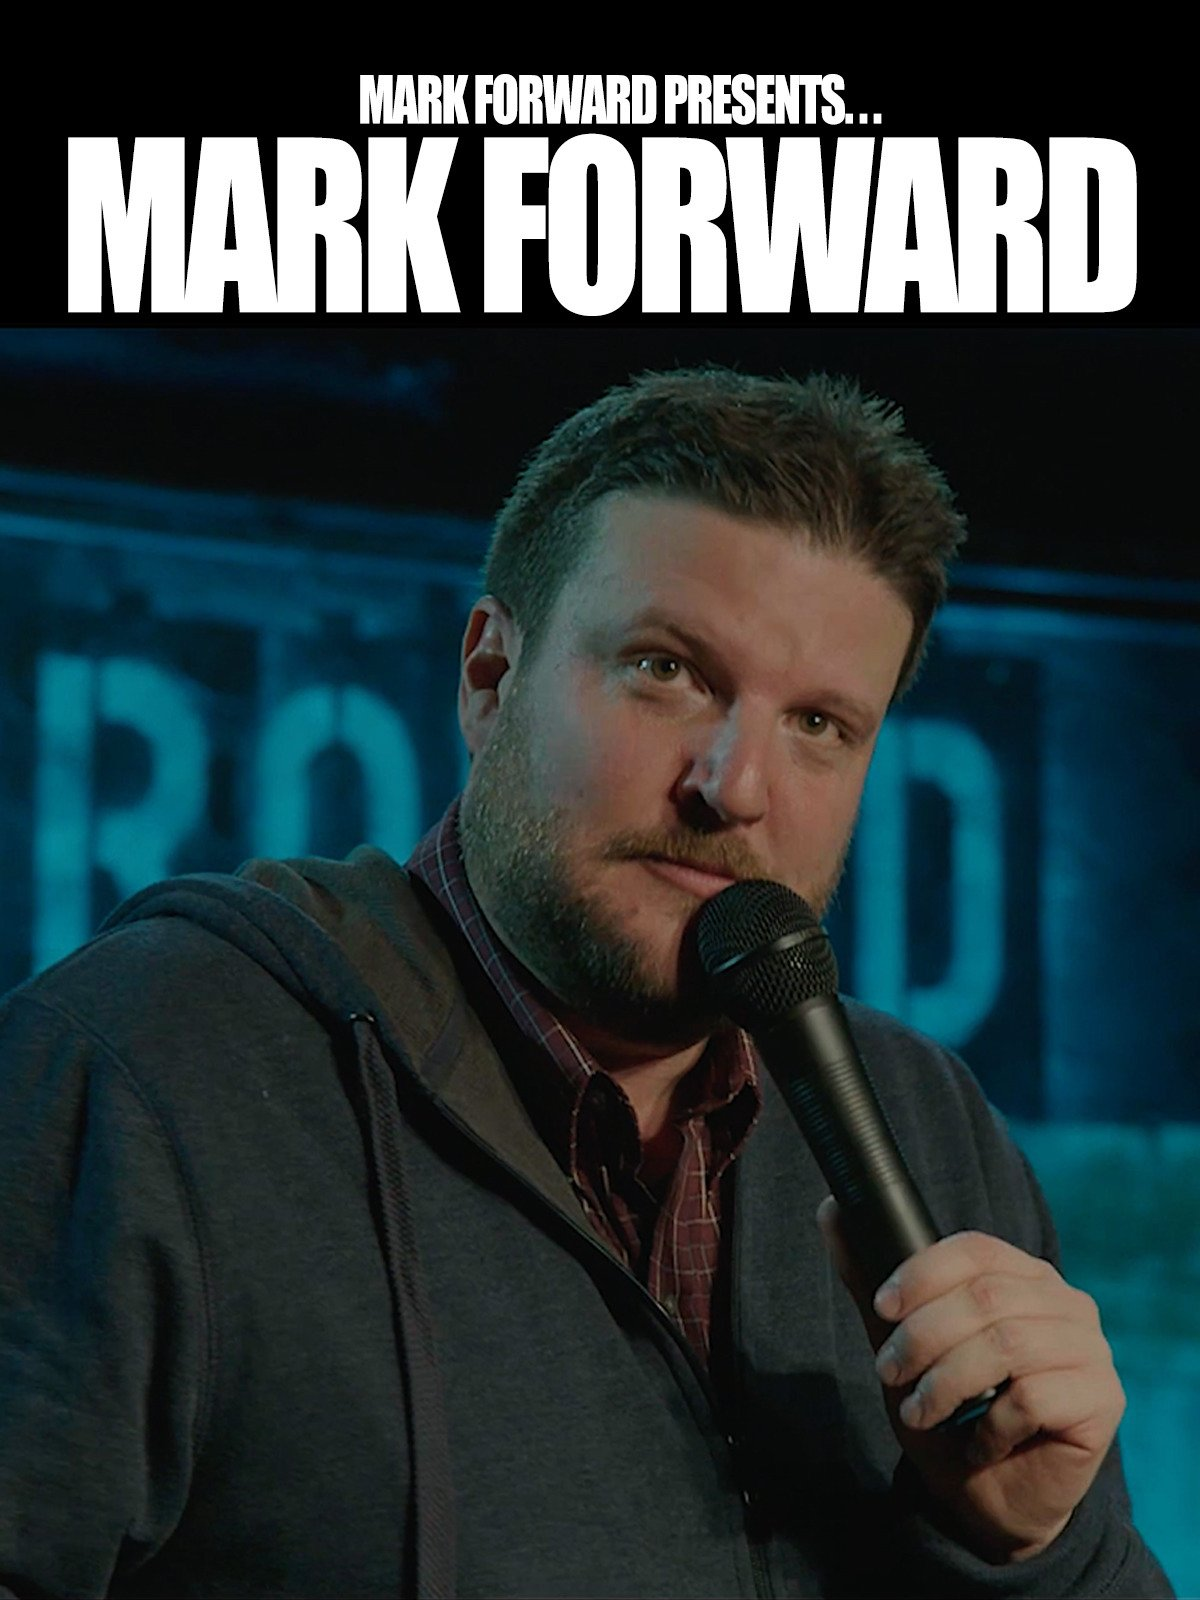 Mark Forward Presents: Mark Forward